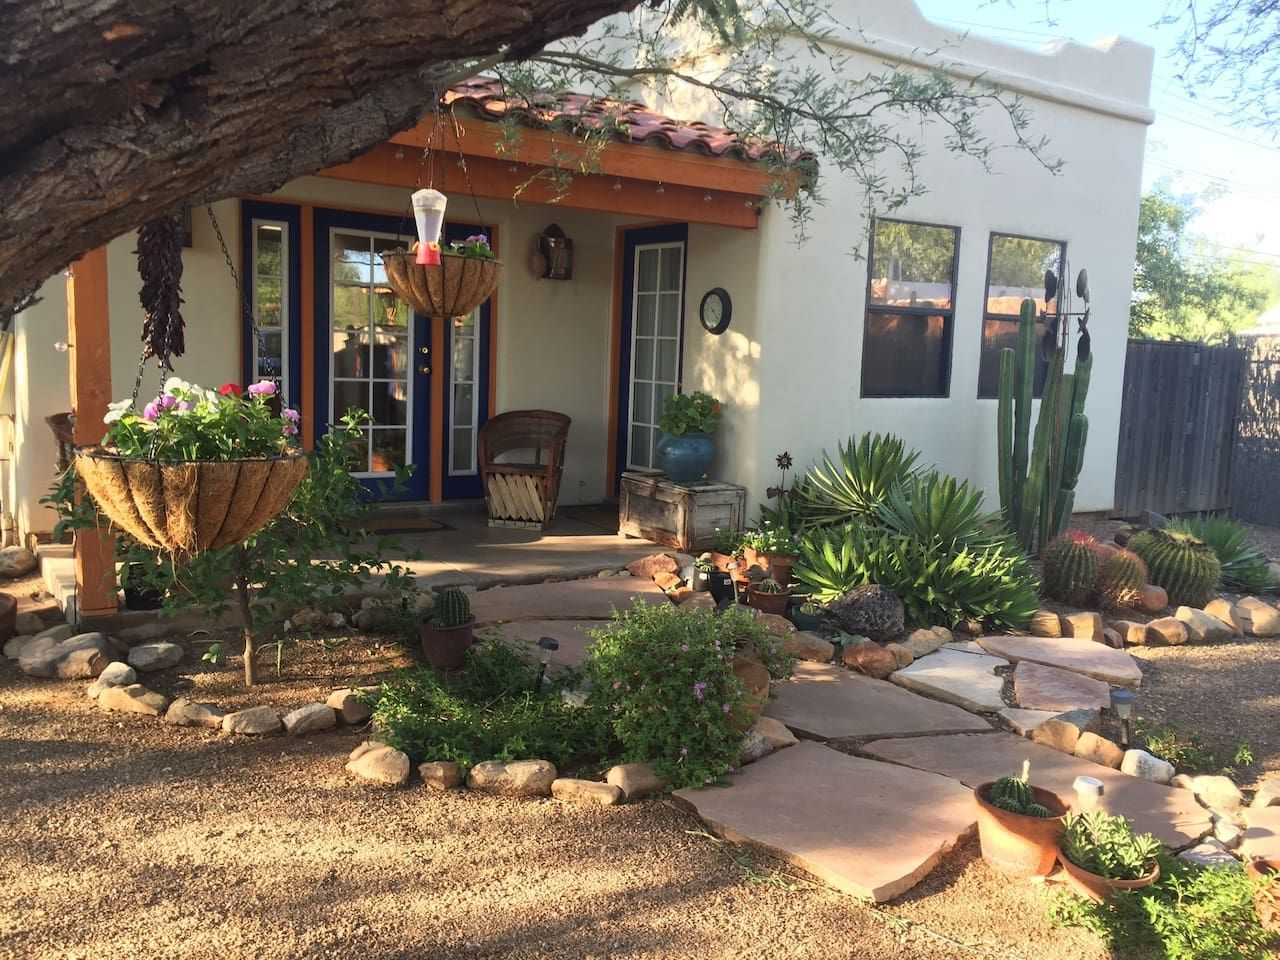 Private Southwestern Style Casita Houses For Rent In Tucson Renting A House Vacation Home Southwestern Style